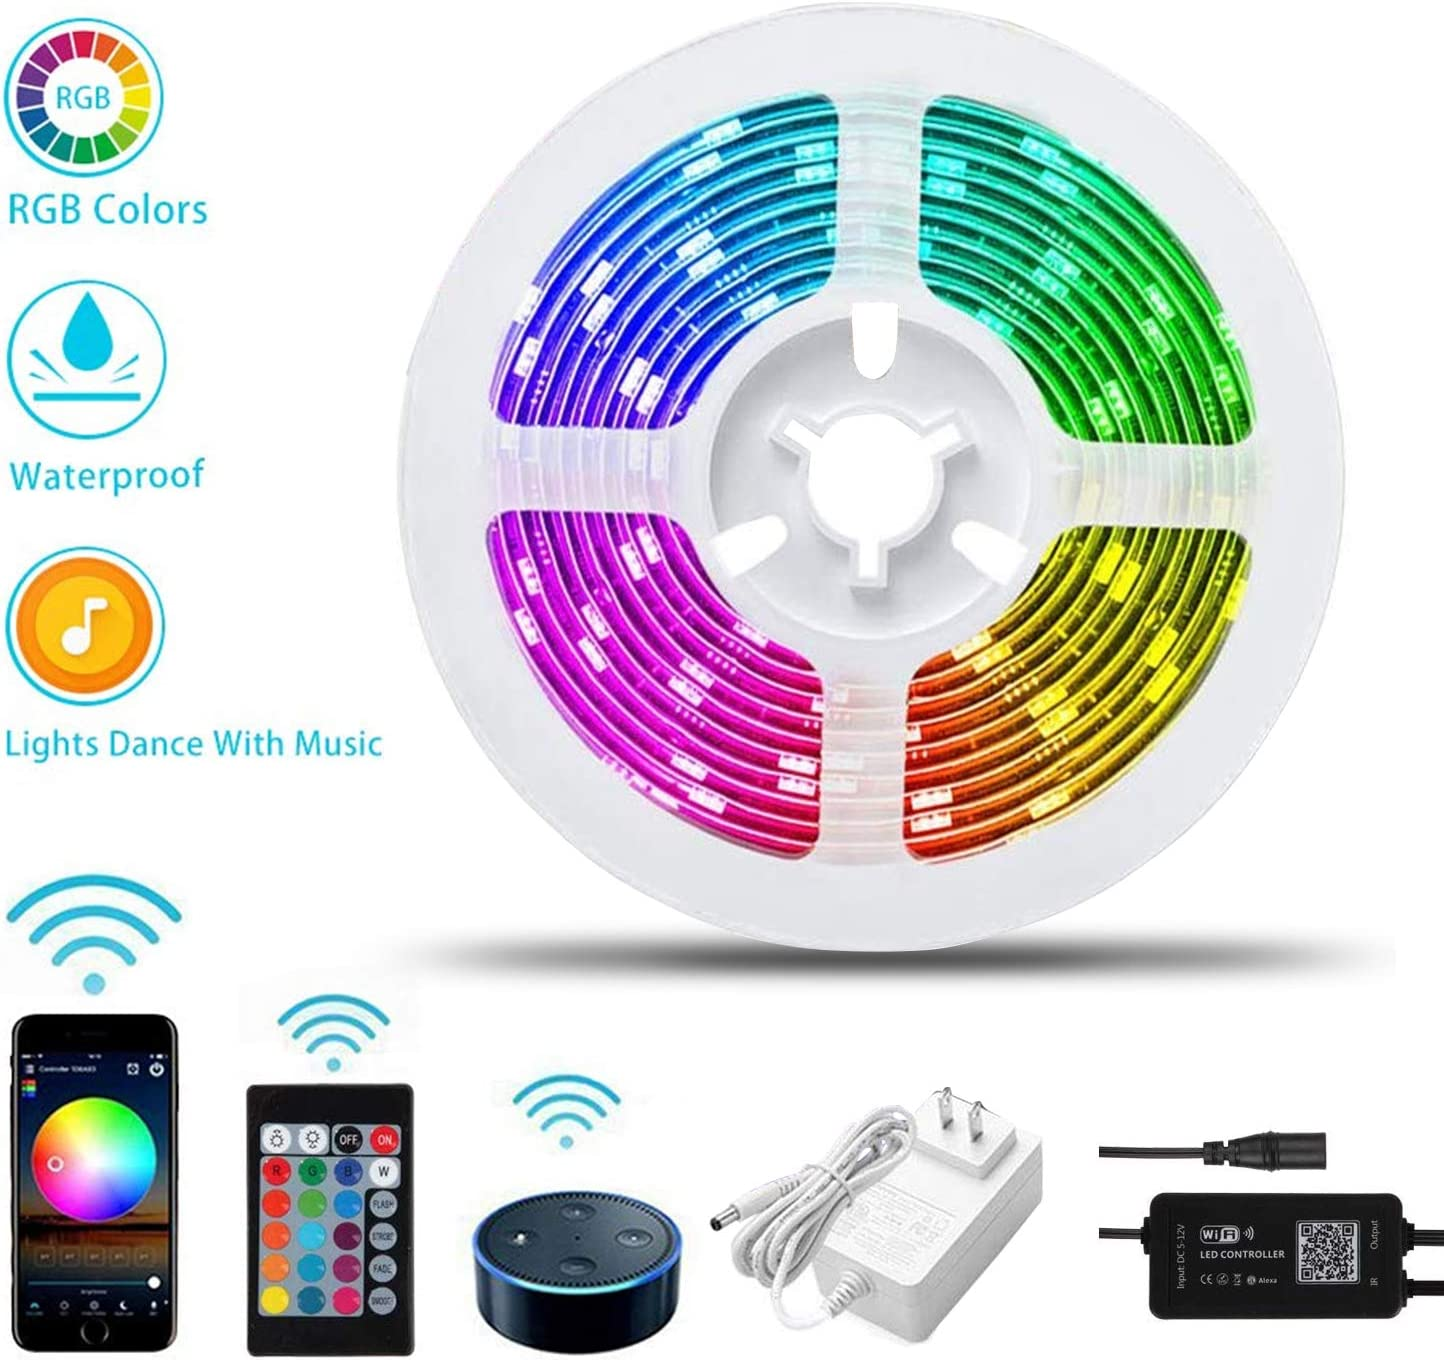 LED Strip Lights, PATIOPTION 16.4ft Waterproof WiFi Works with Alexa, Google, App Controlled Music Sync RGB 5050 LED Tape Lights, Color Changing with Remote for iOS and Android, Bedroom, Home Decor